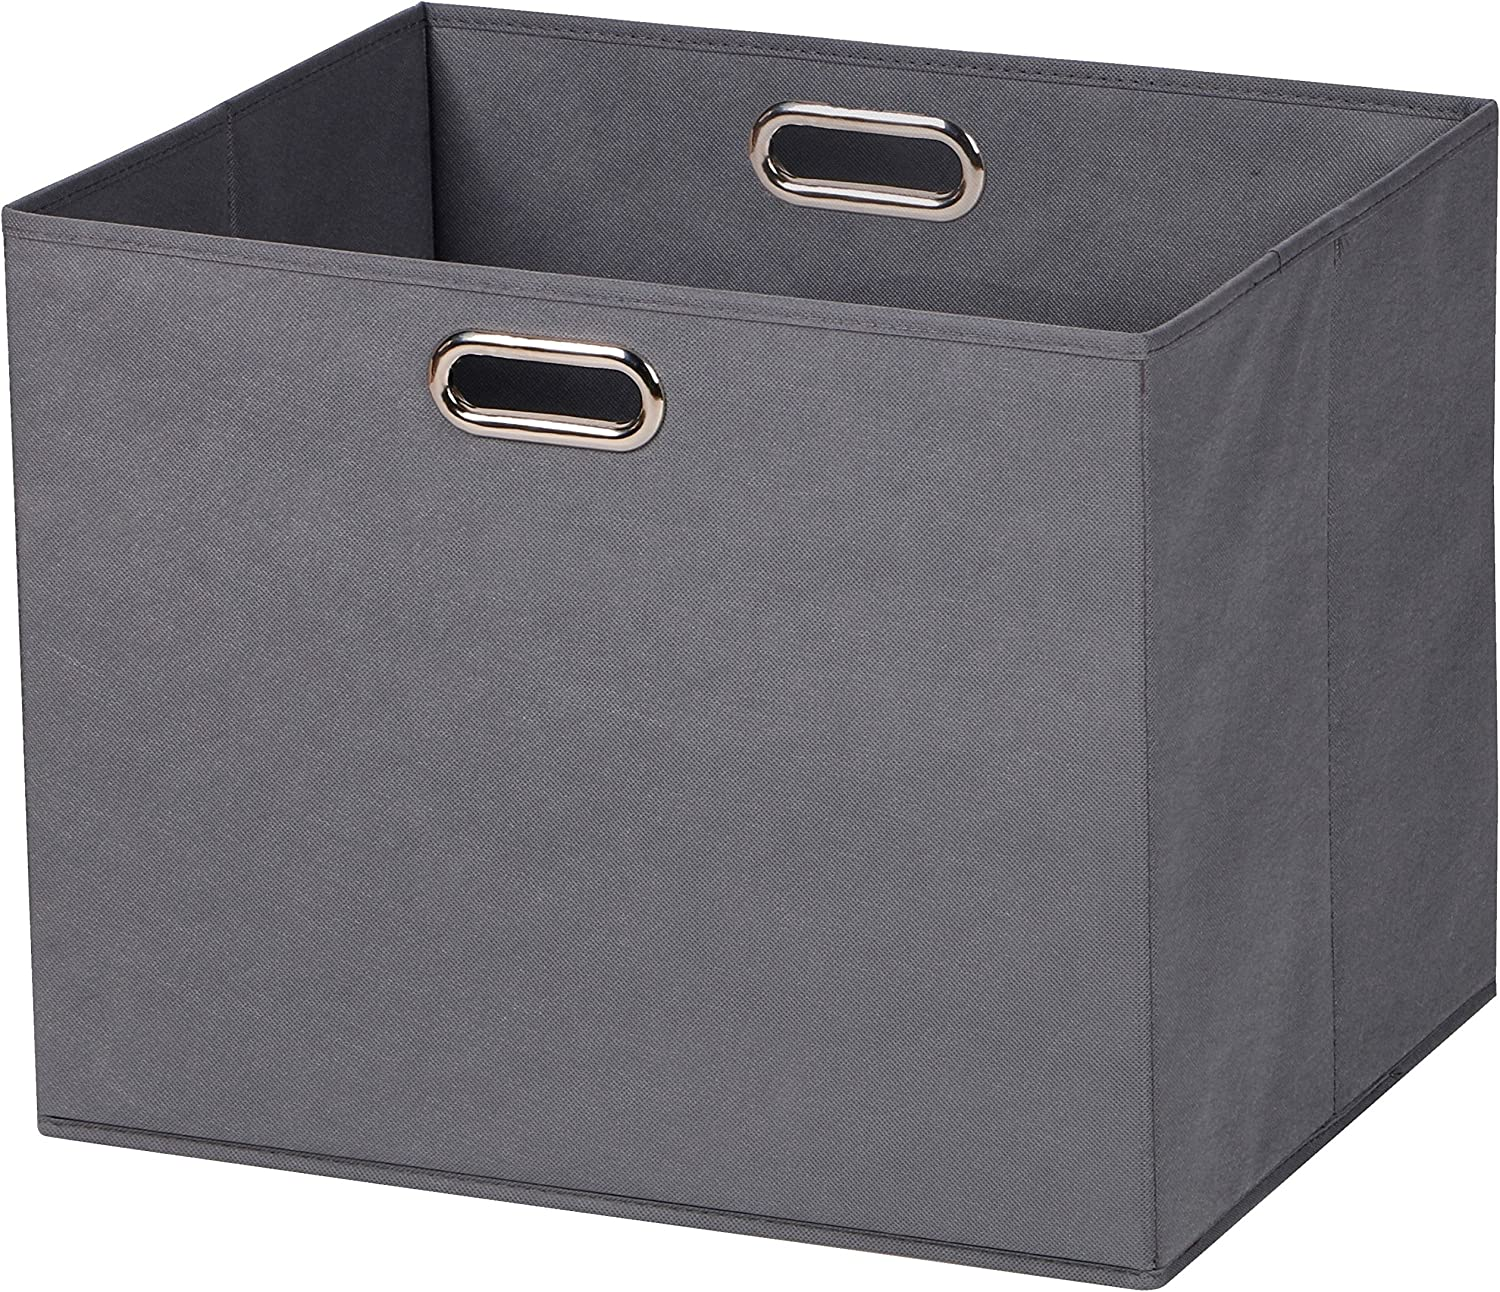 Prorighty 2-Pack Jumbo Storage Bins   Largest Basket 17.7 inch Dual Metal Handles   Foldable Containers, Boxes, Tote, Baskets  for Offices, Nursery, Toys, Laundry, Gifts  Household Organization  Grey